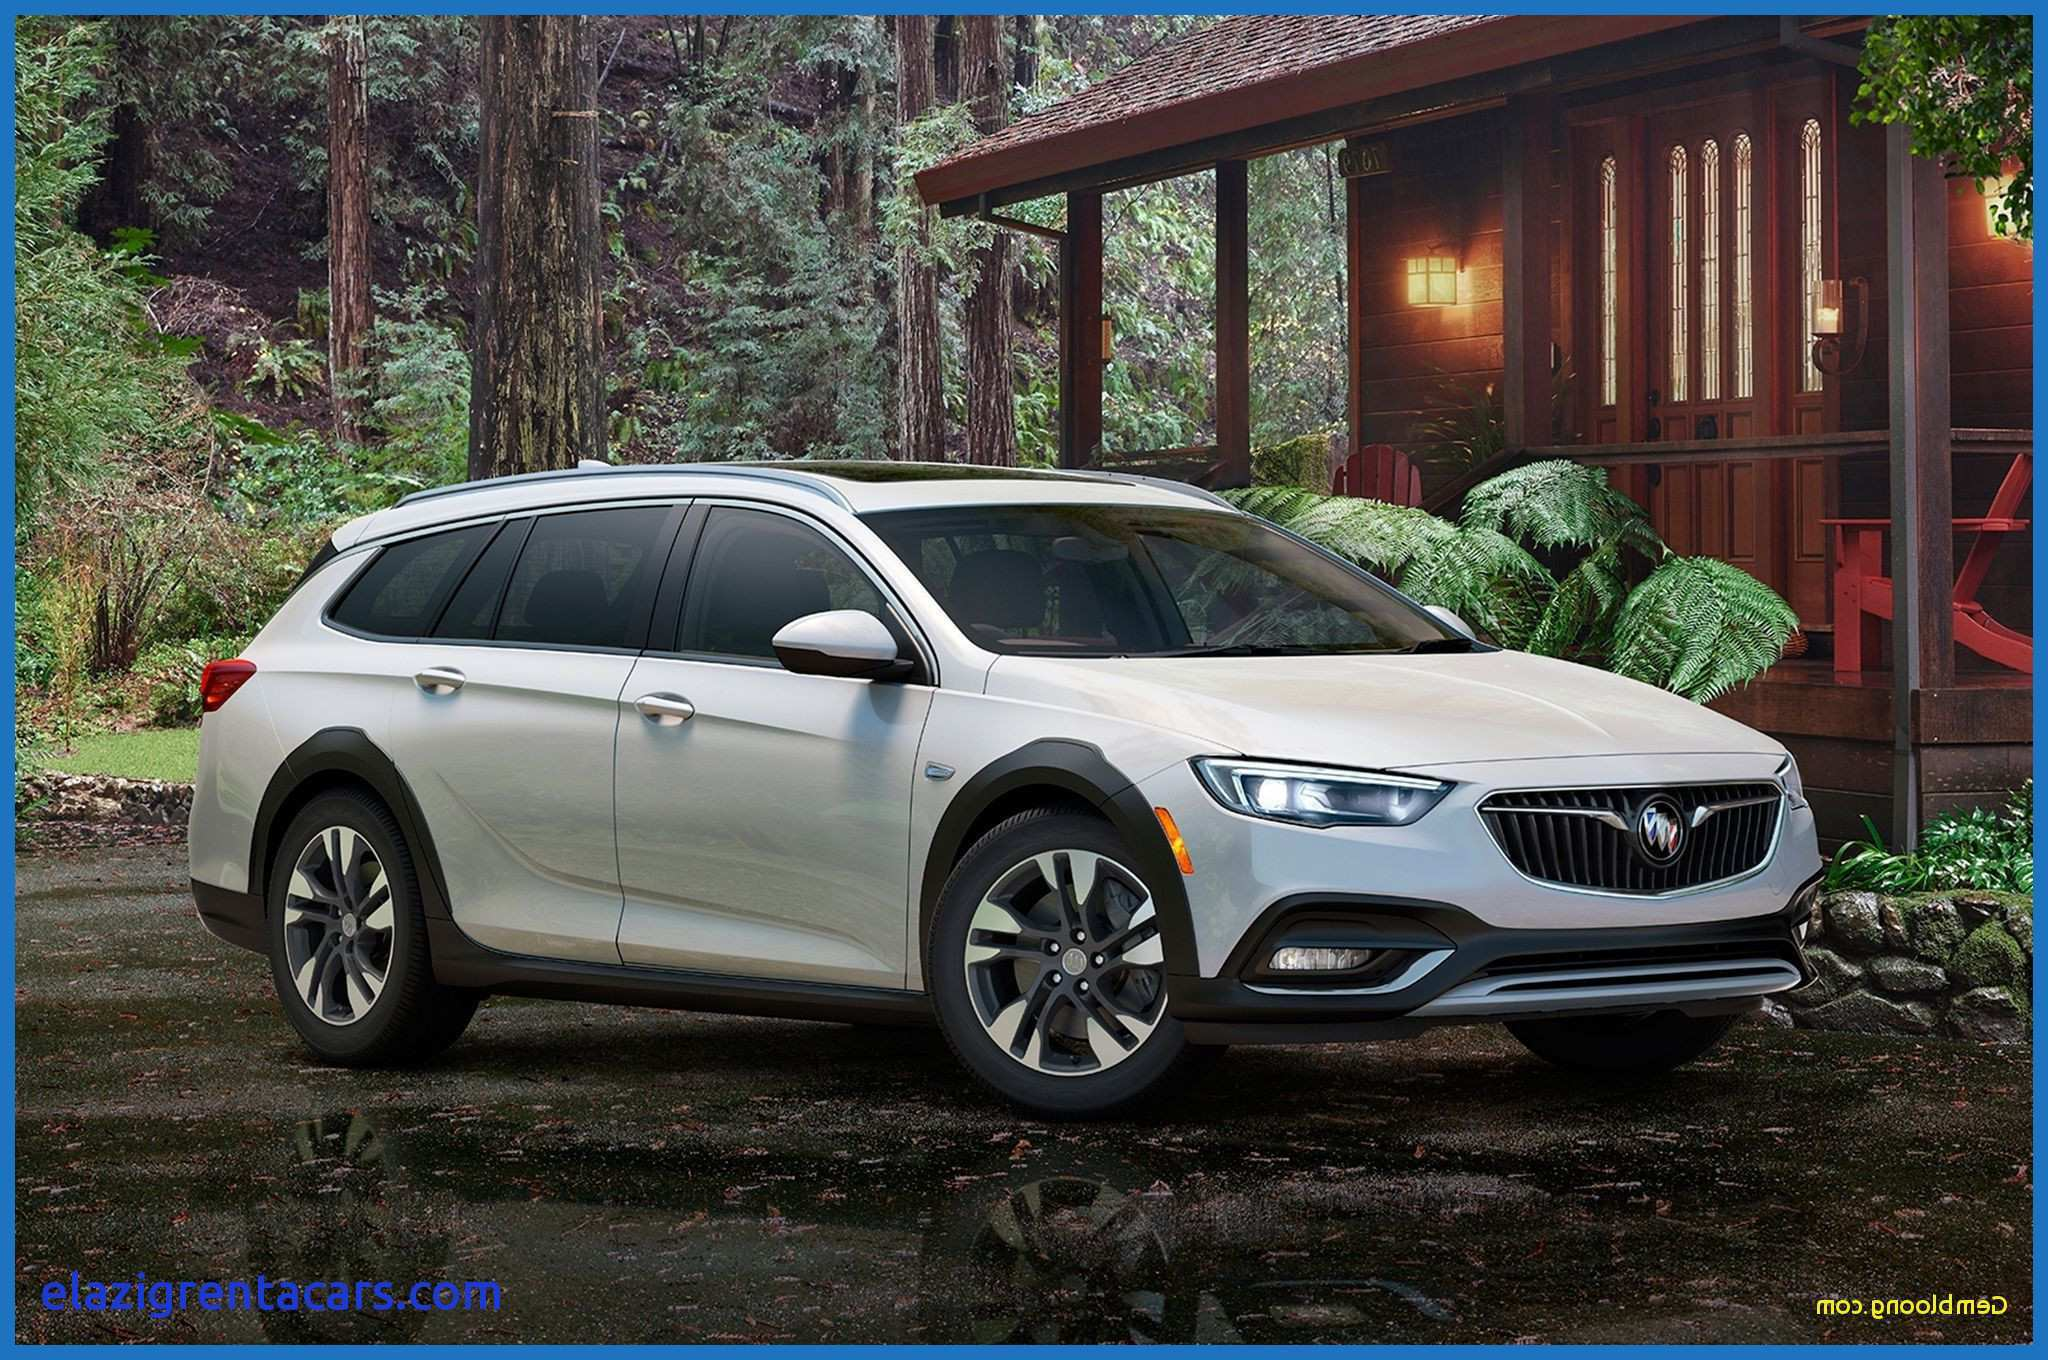 60 Gallery of 2019 Buick Electra New Concept with 2019 Buick Electra